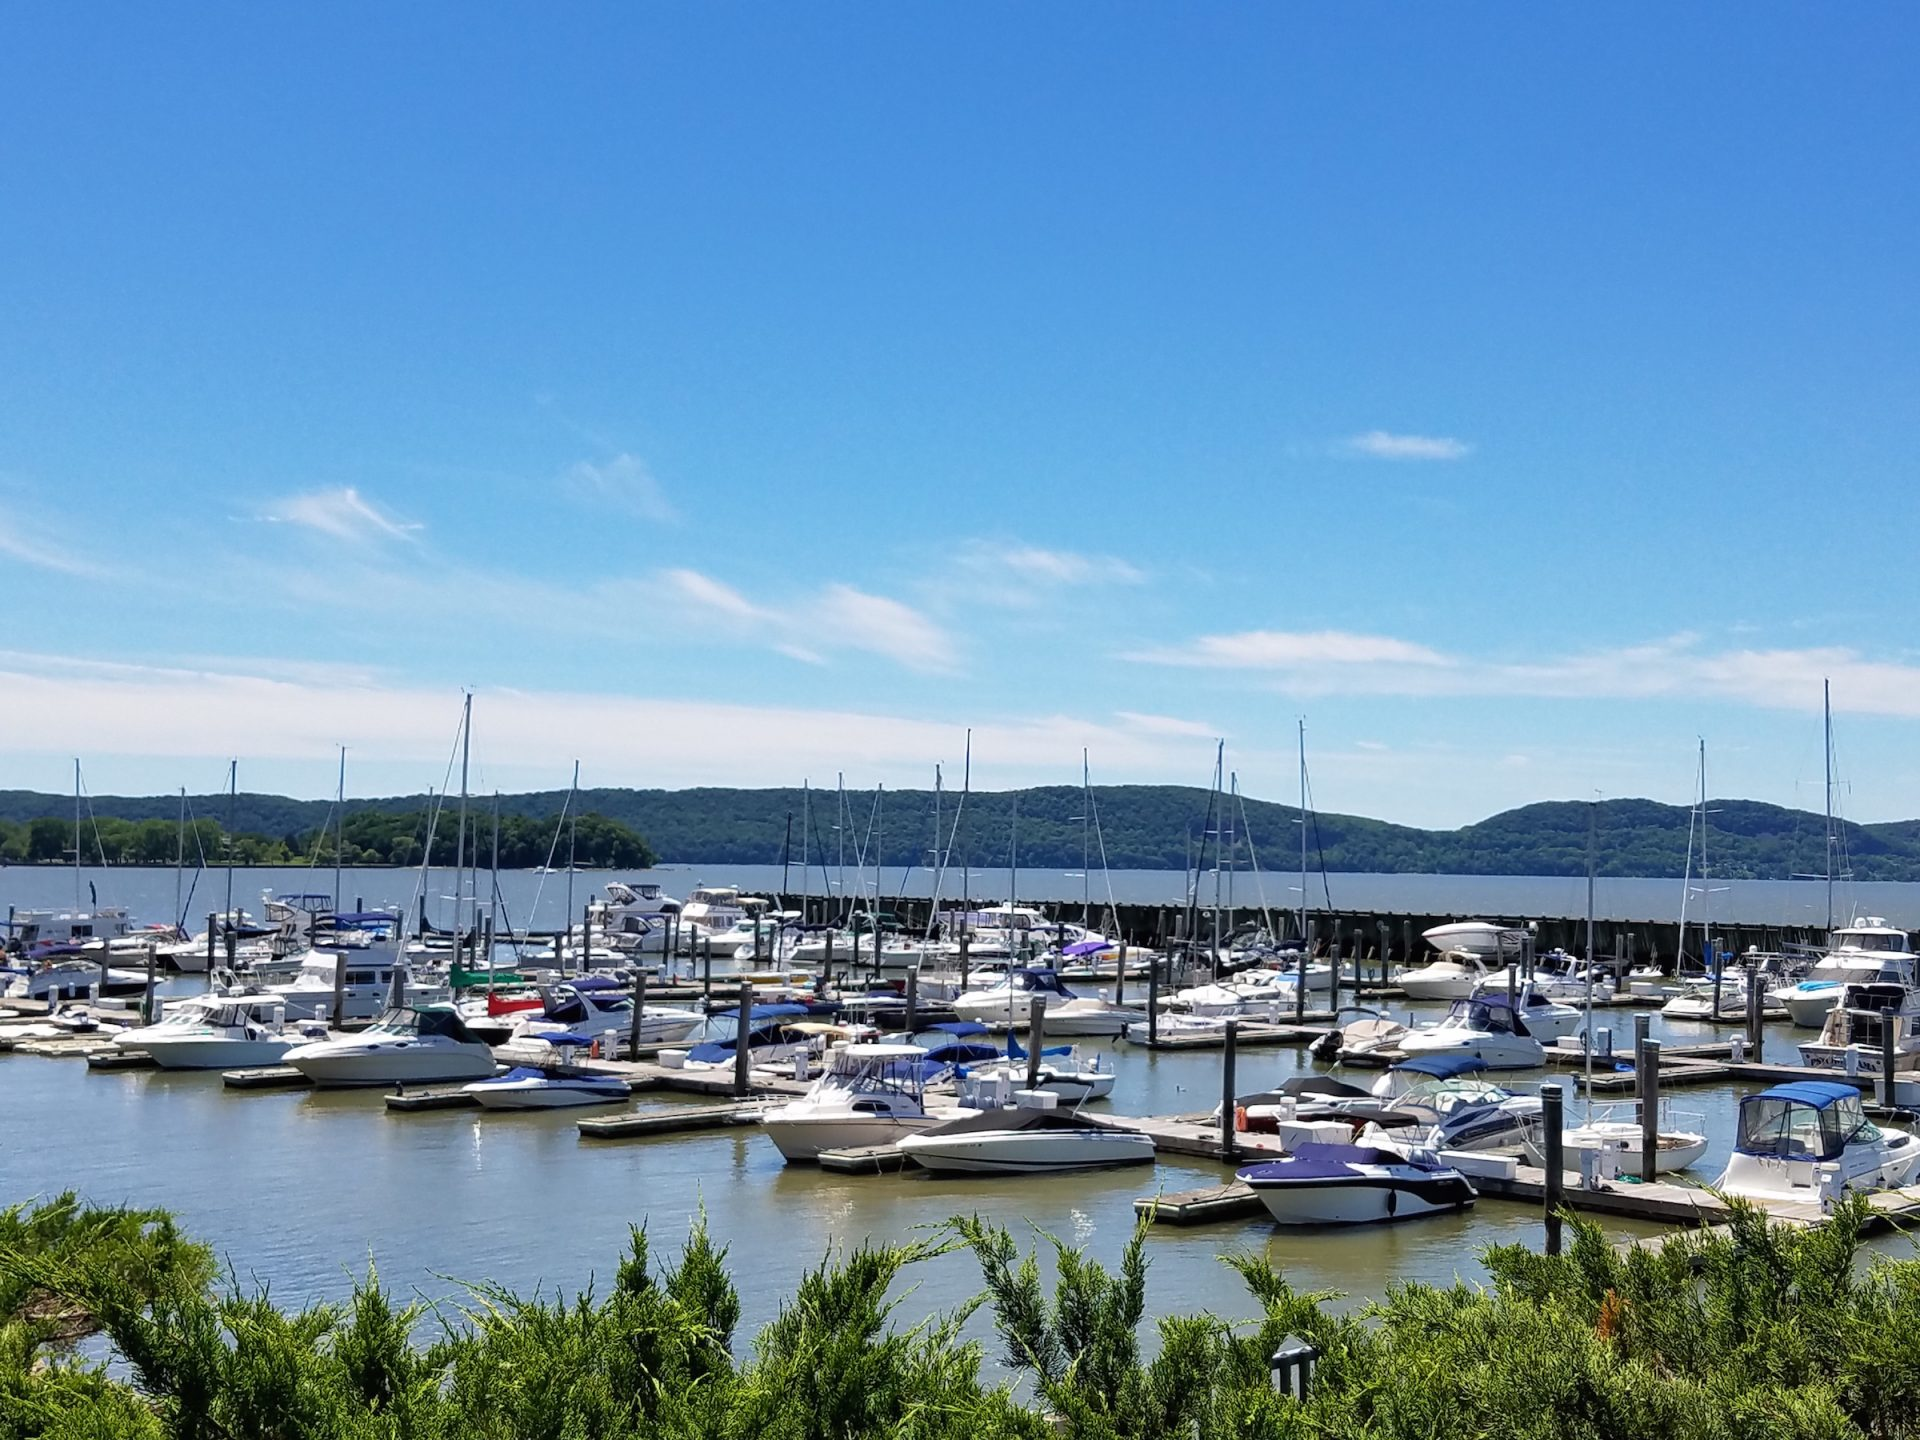 Half Moon Bay Marina in Croton-On-Hudson, NY